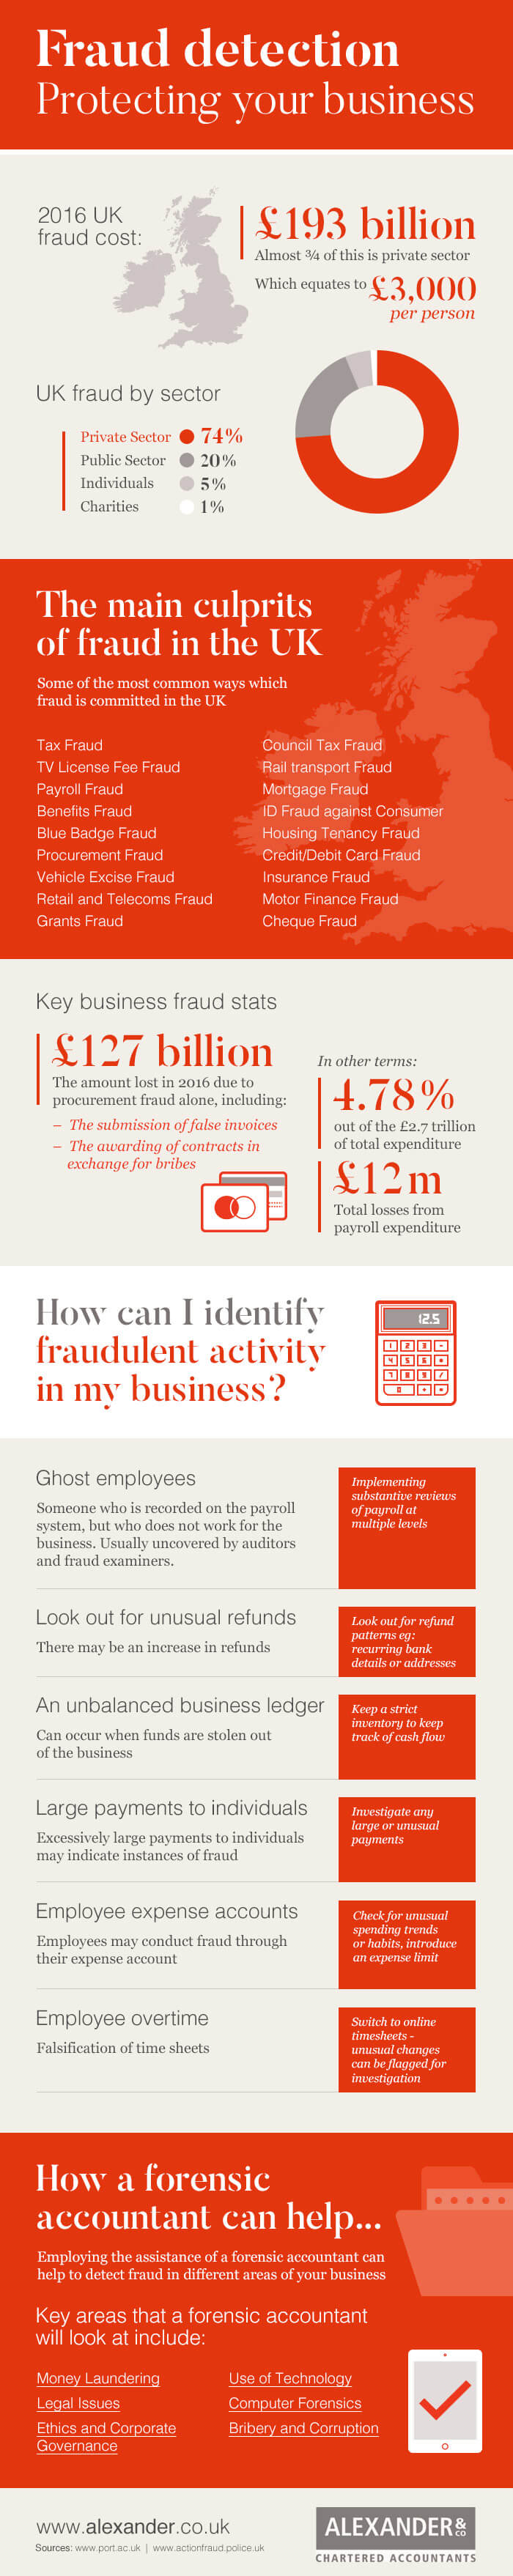 signs of fraud